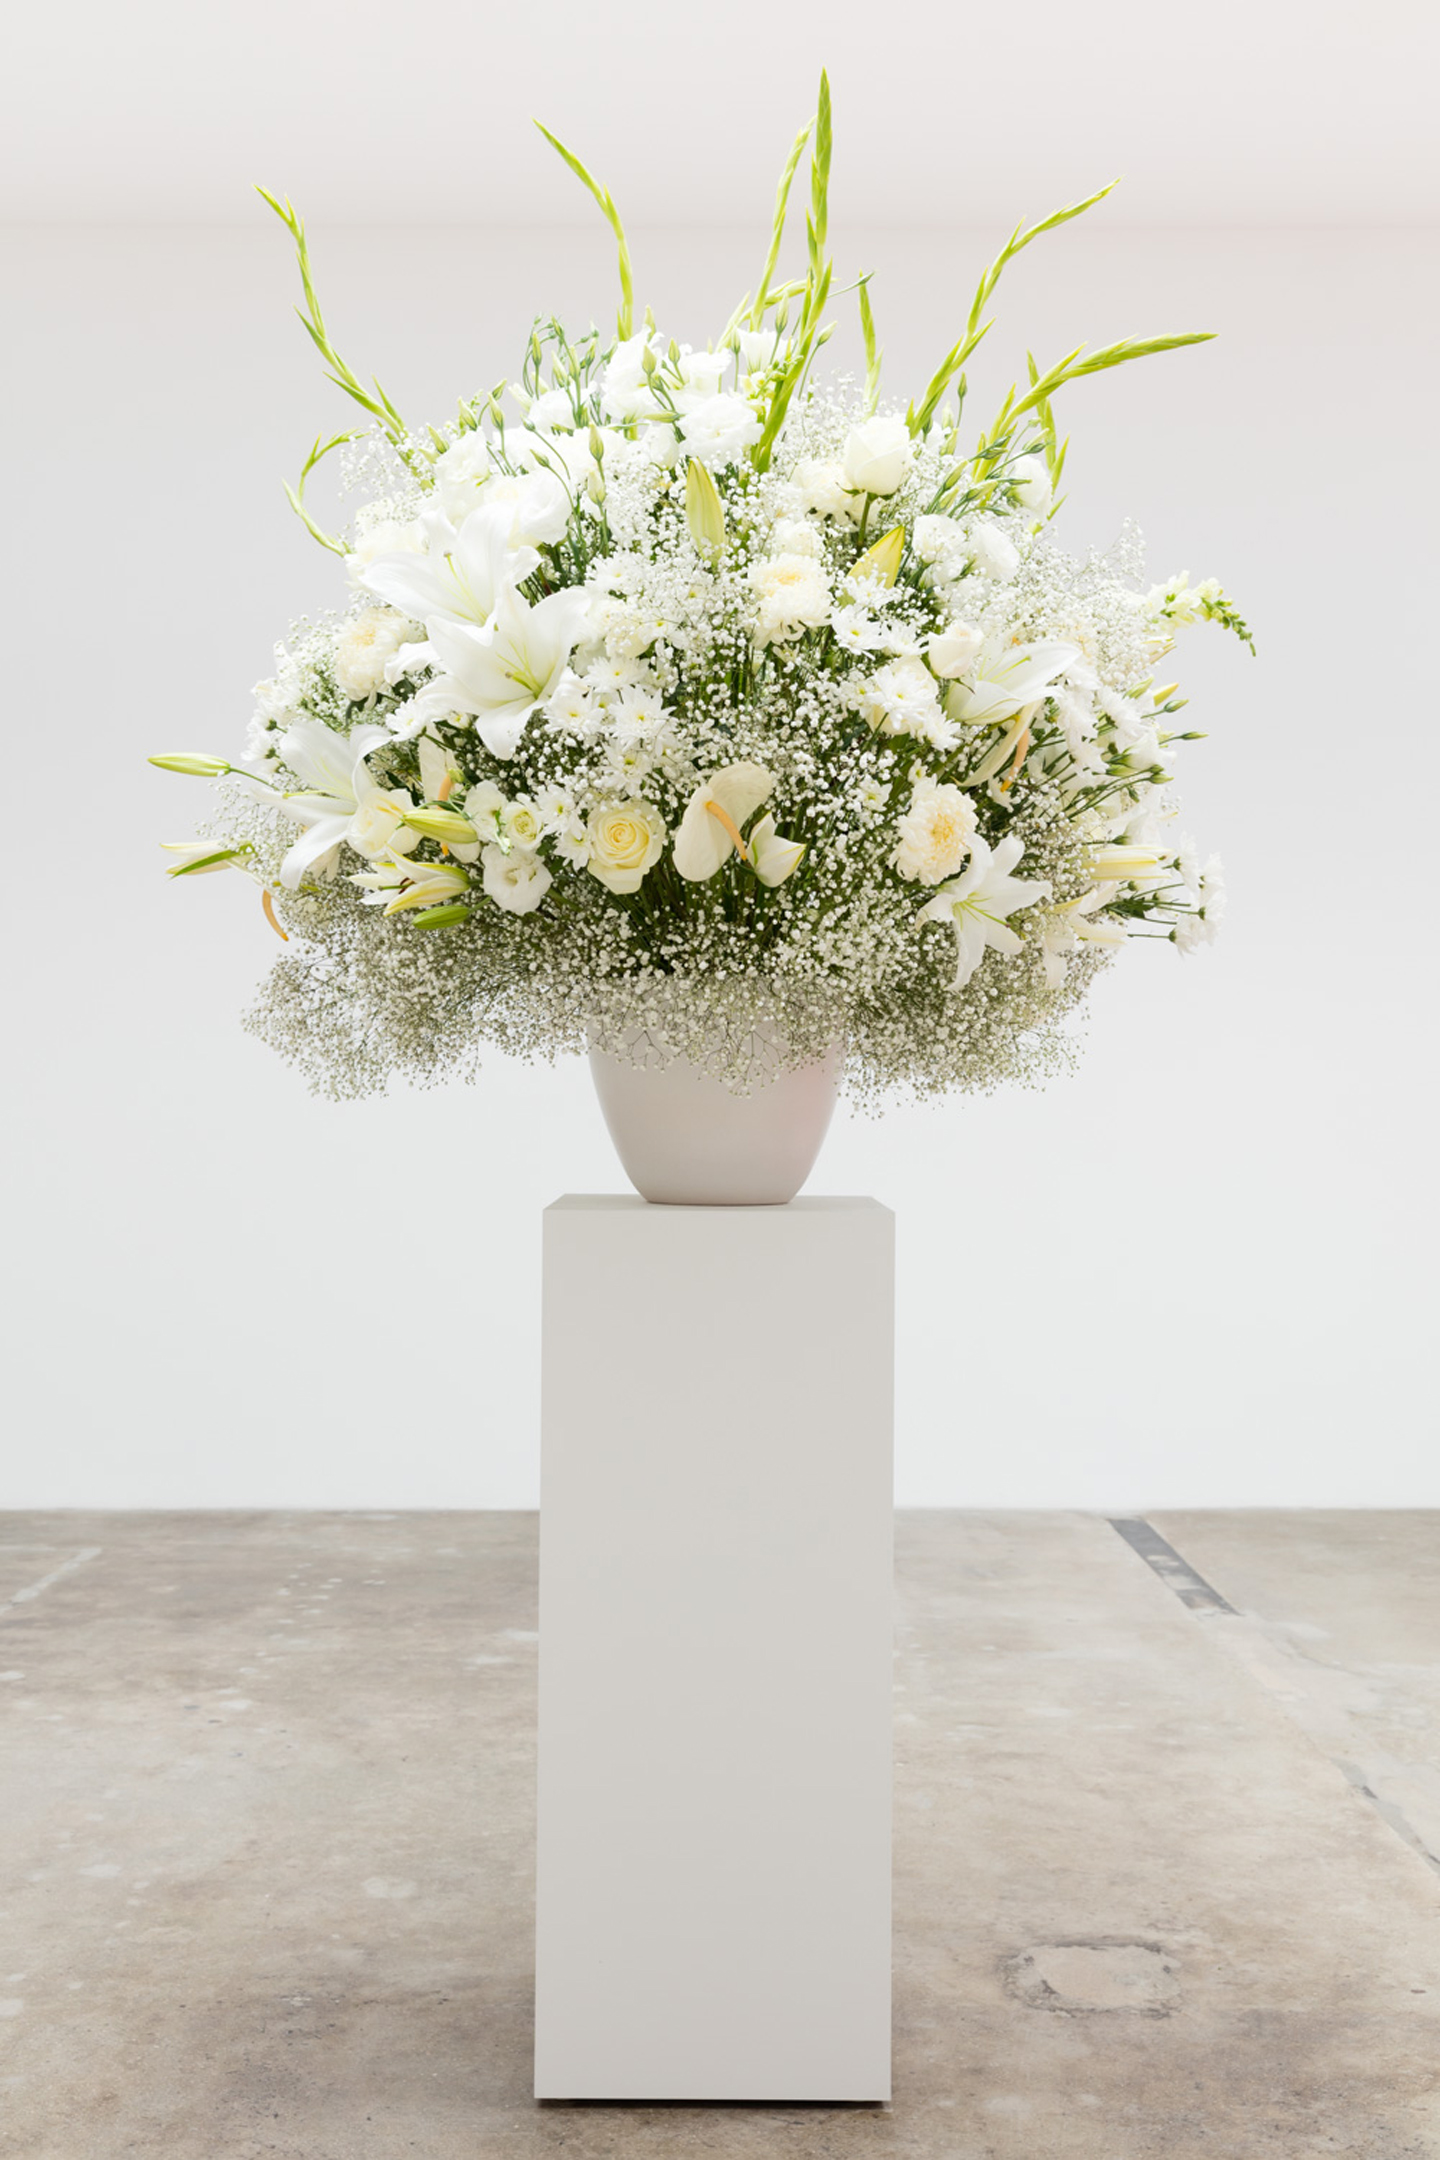 Willem de Rooij, Bouquet IX, 2012. Courtesy: the artist and Regen Projects, Los Angeles. Photo: Michael Underwood